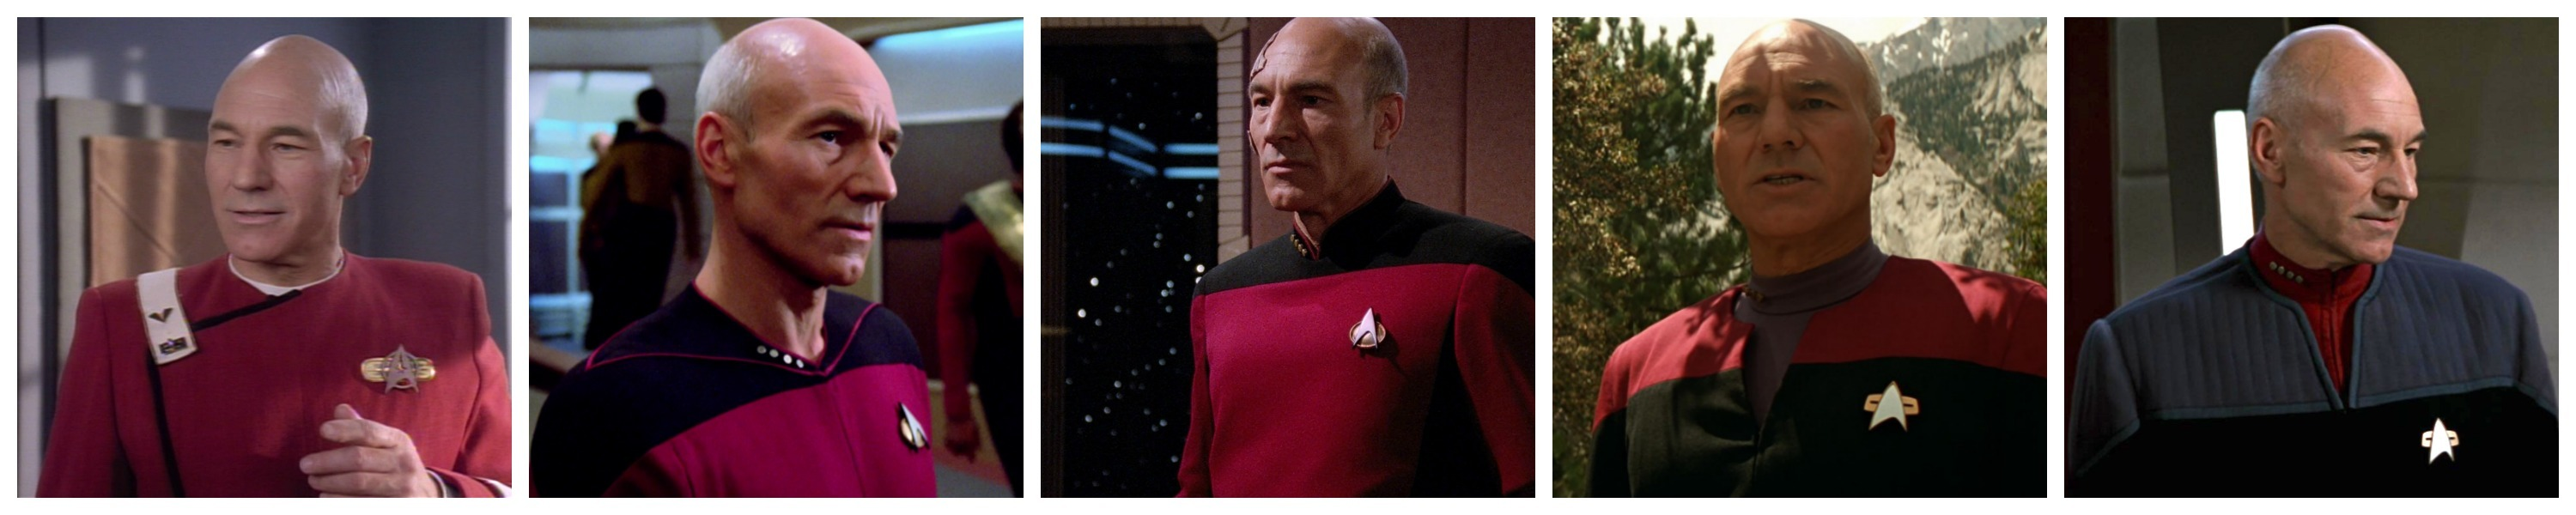 A sampling of uniforms Jean-Luc Picard wore in chronological order.